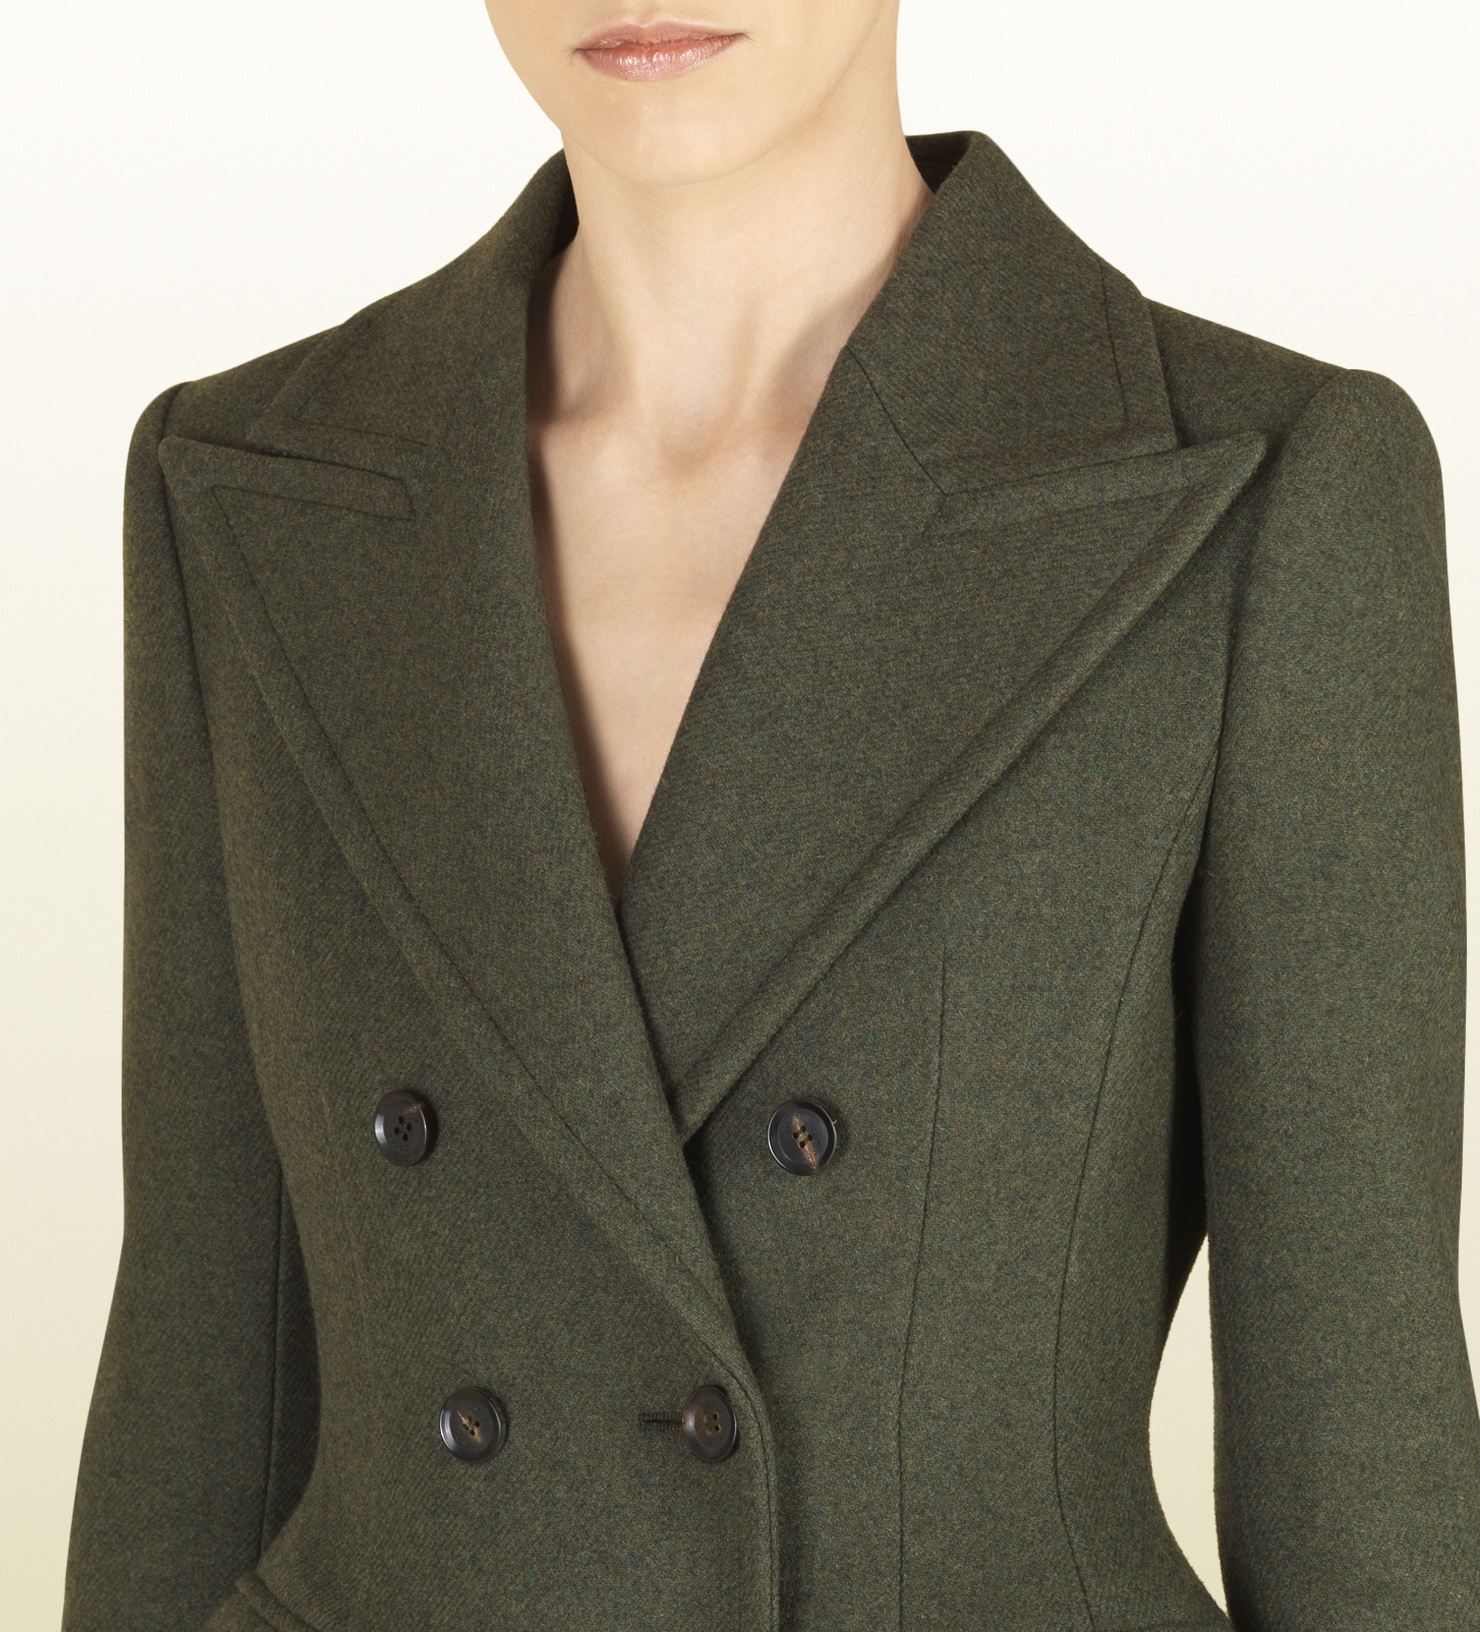 96376808c Gucci Military Green Wool Fitted Waist Coat in Green - Lyst